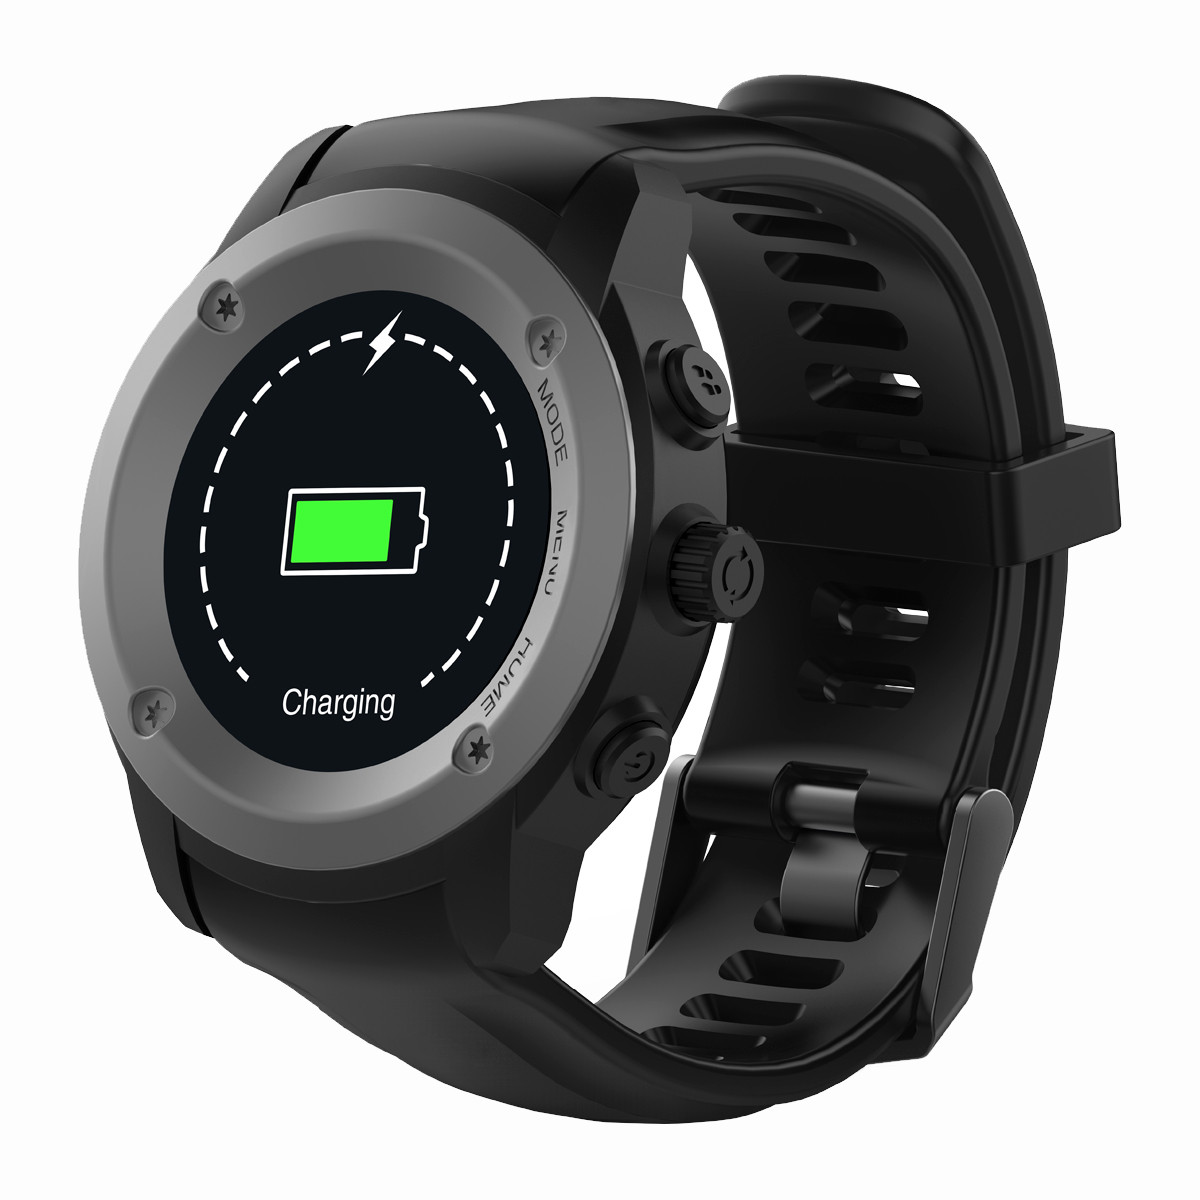 Fitgo Sportwatch FW 17 POWER-img-1261